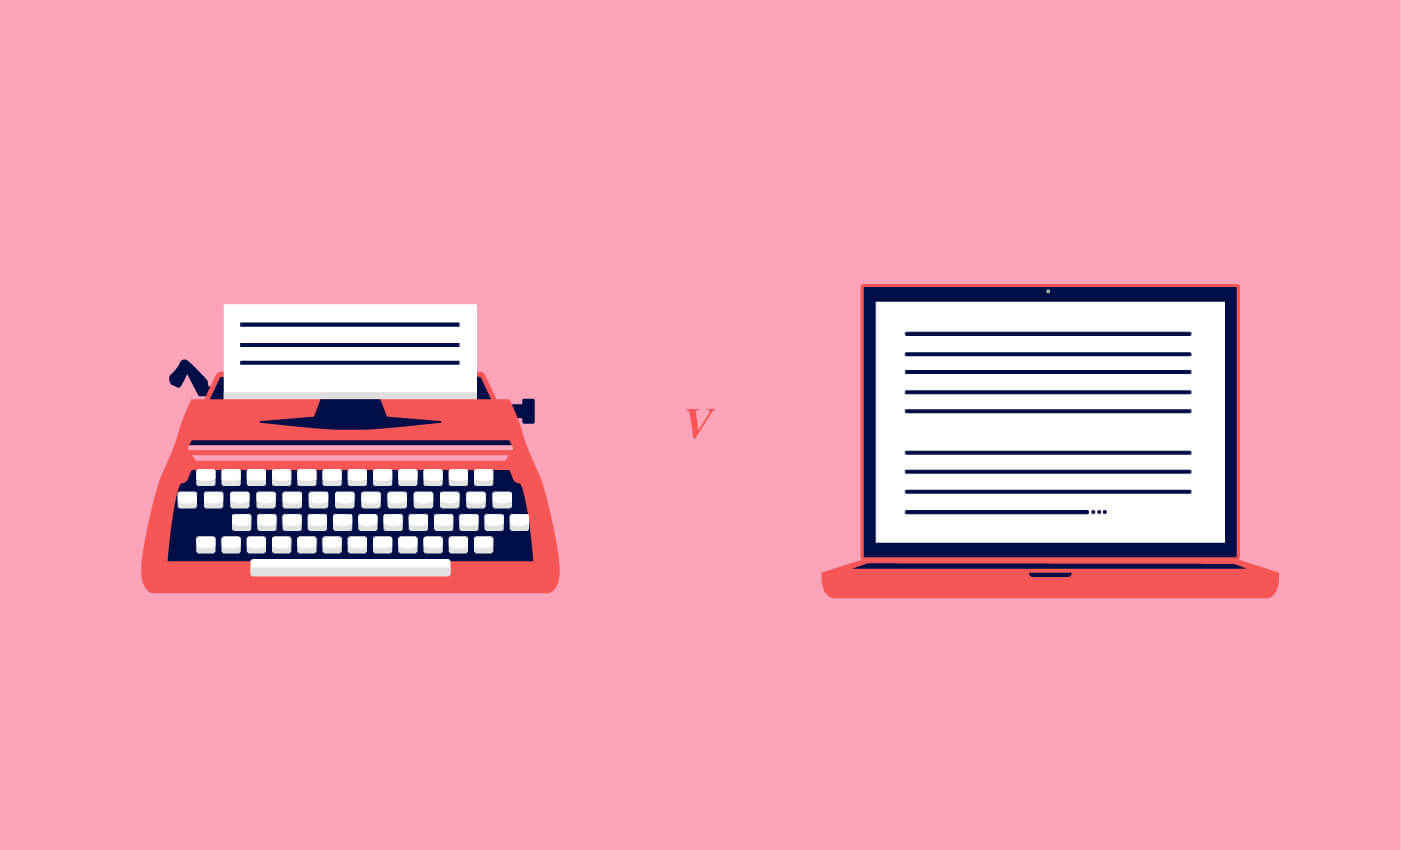 Illustration of a typewriter and laptop for the Traditional Marketing Vs Digital Marketing article